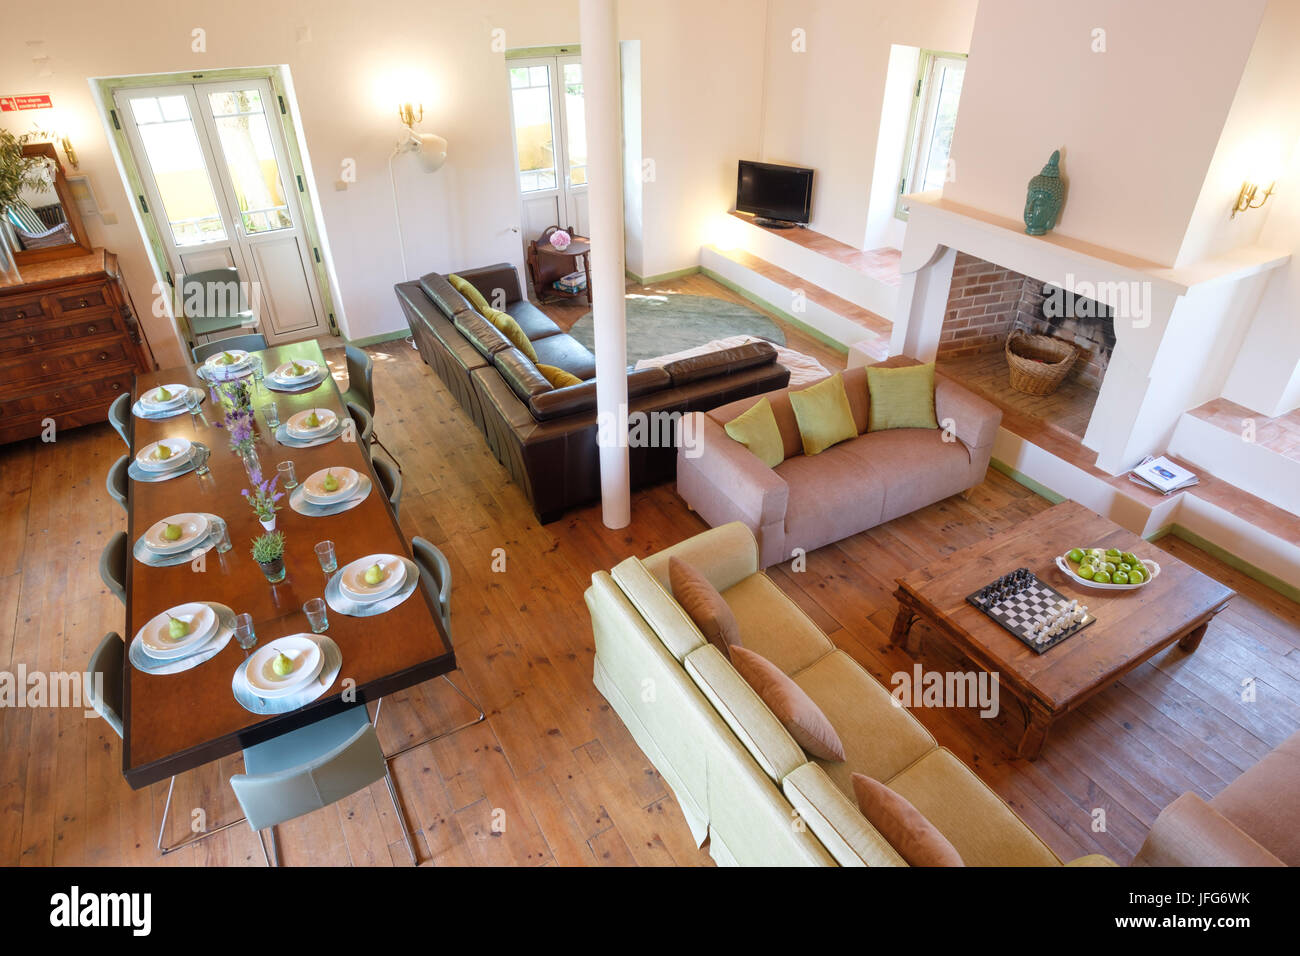 Overhead view of a living room and dining room - Stock Image